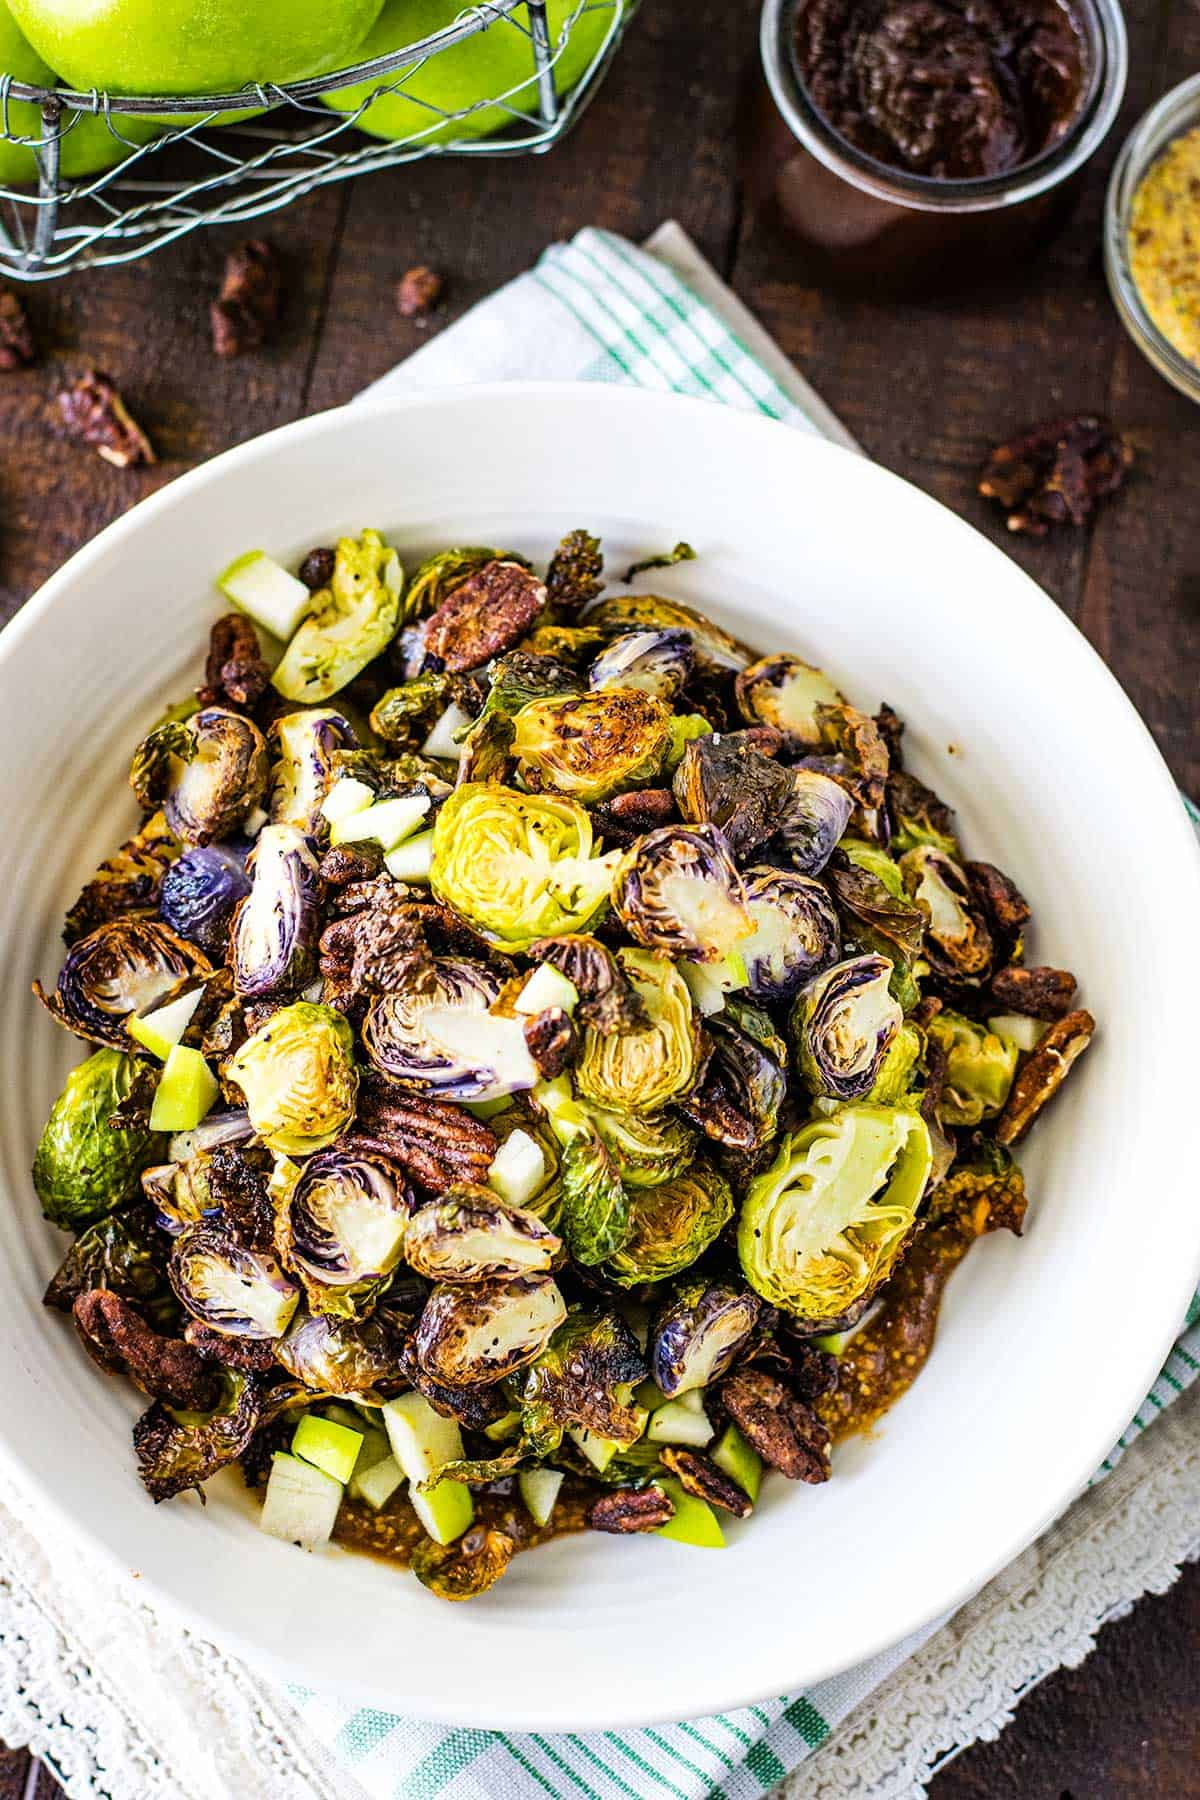 Overhead image of roasted brussels sprouts in a white bowl on a wooden table.